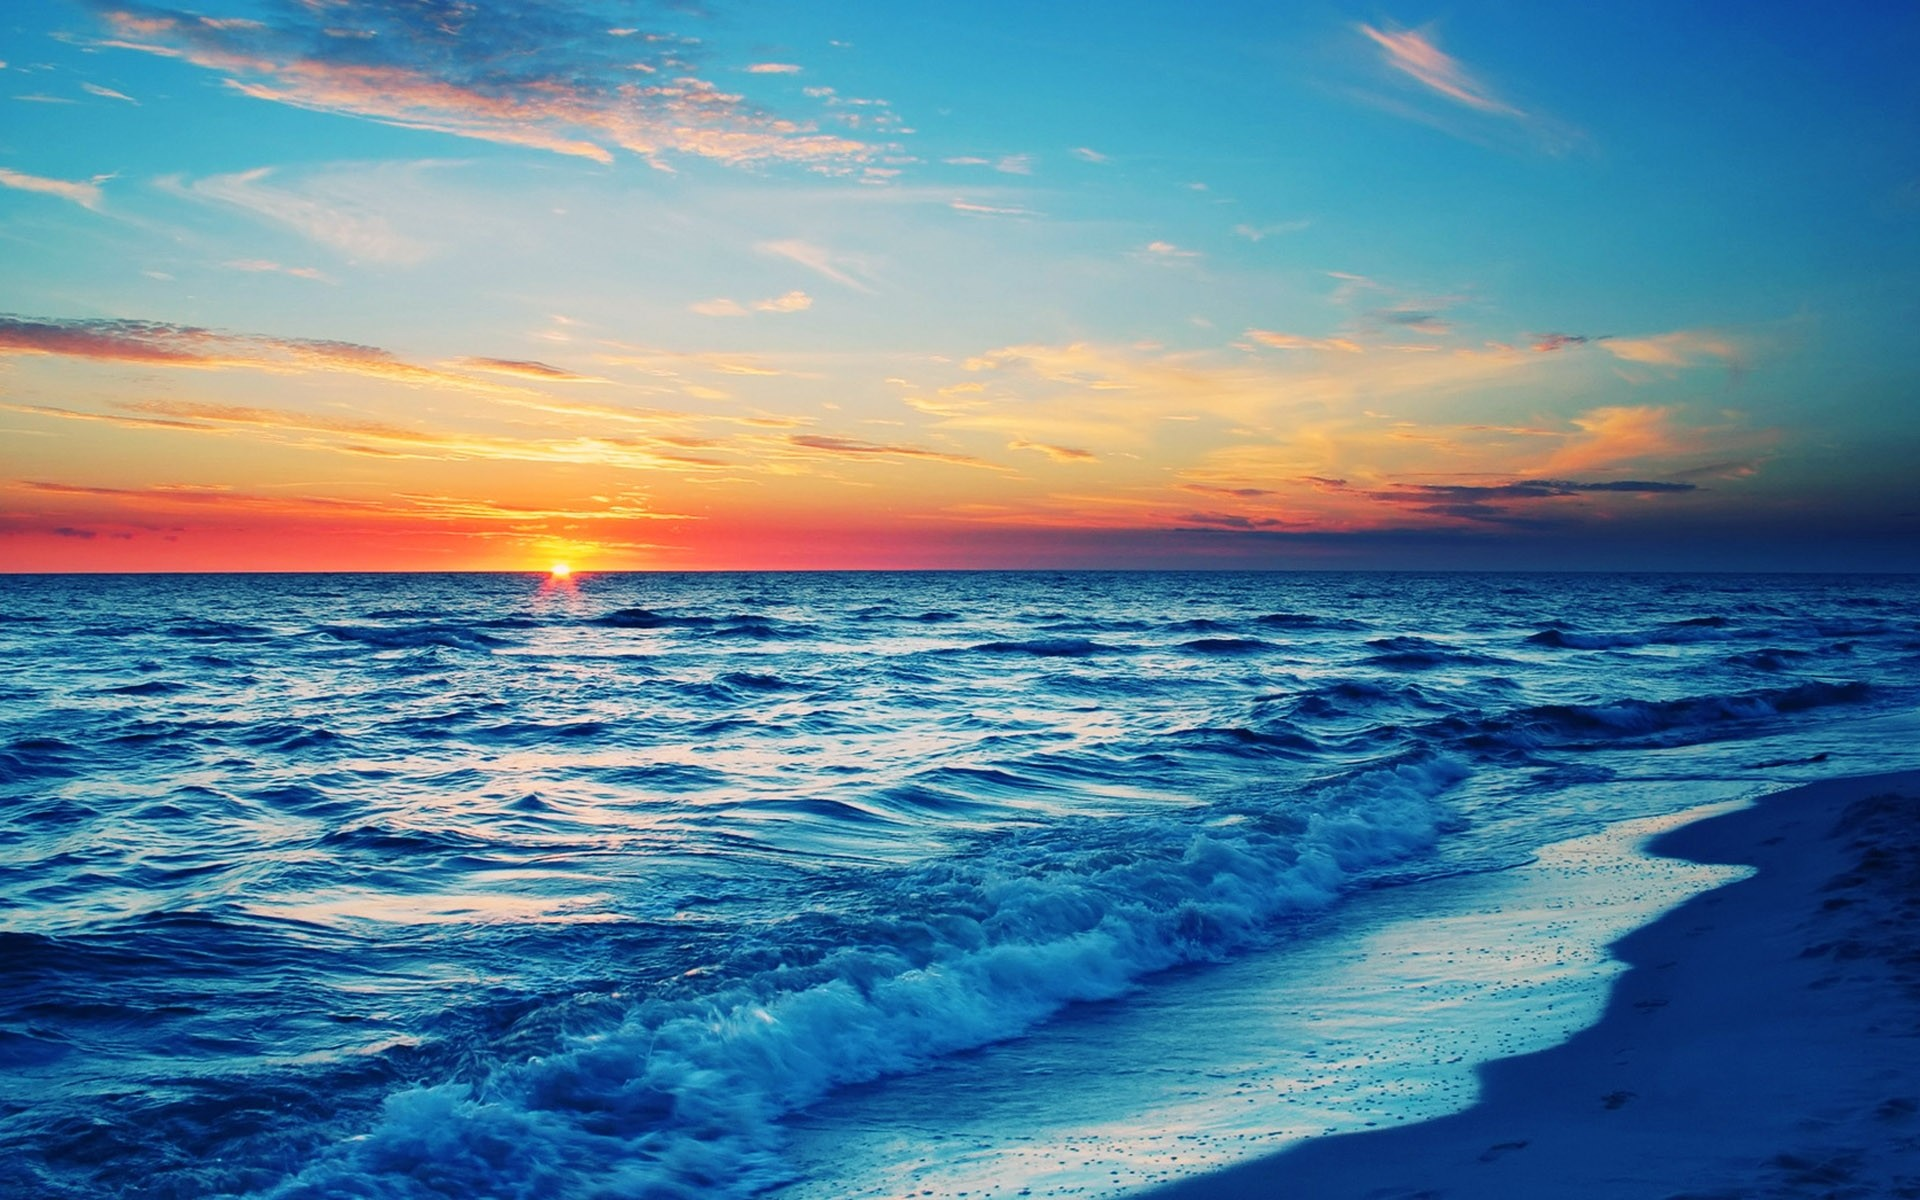 Beaches Hd wallpaper for download